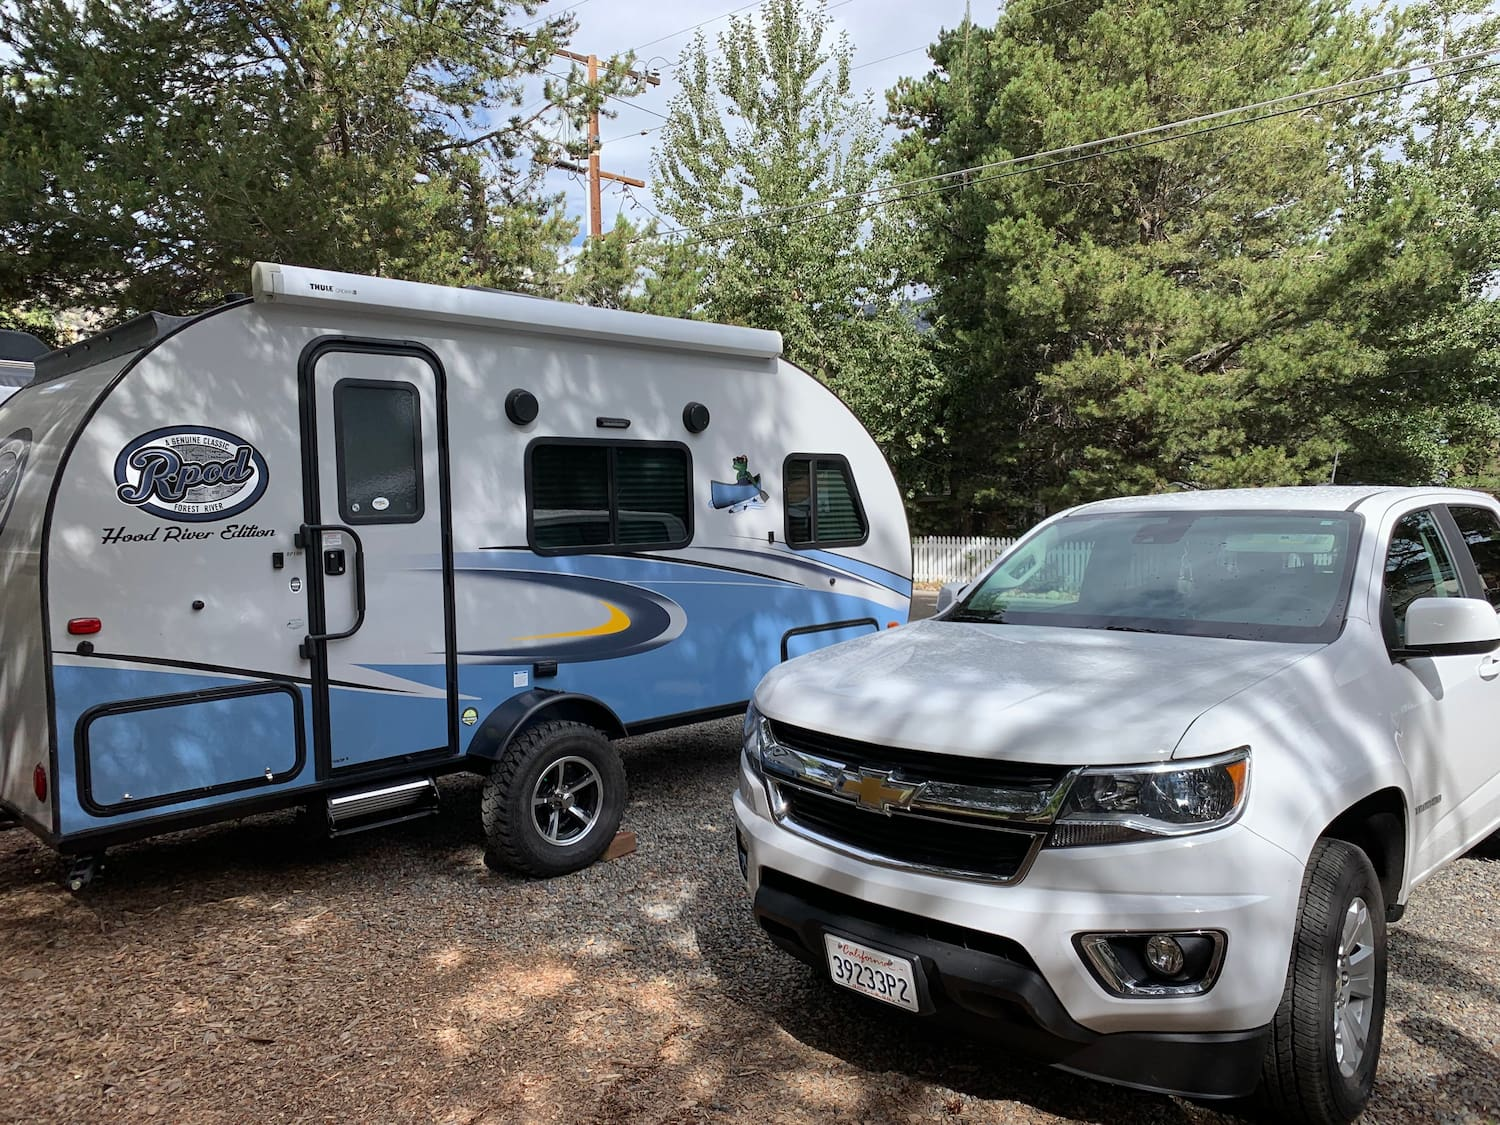 trailer and truck parked at campsite